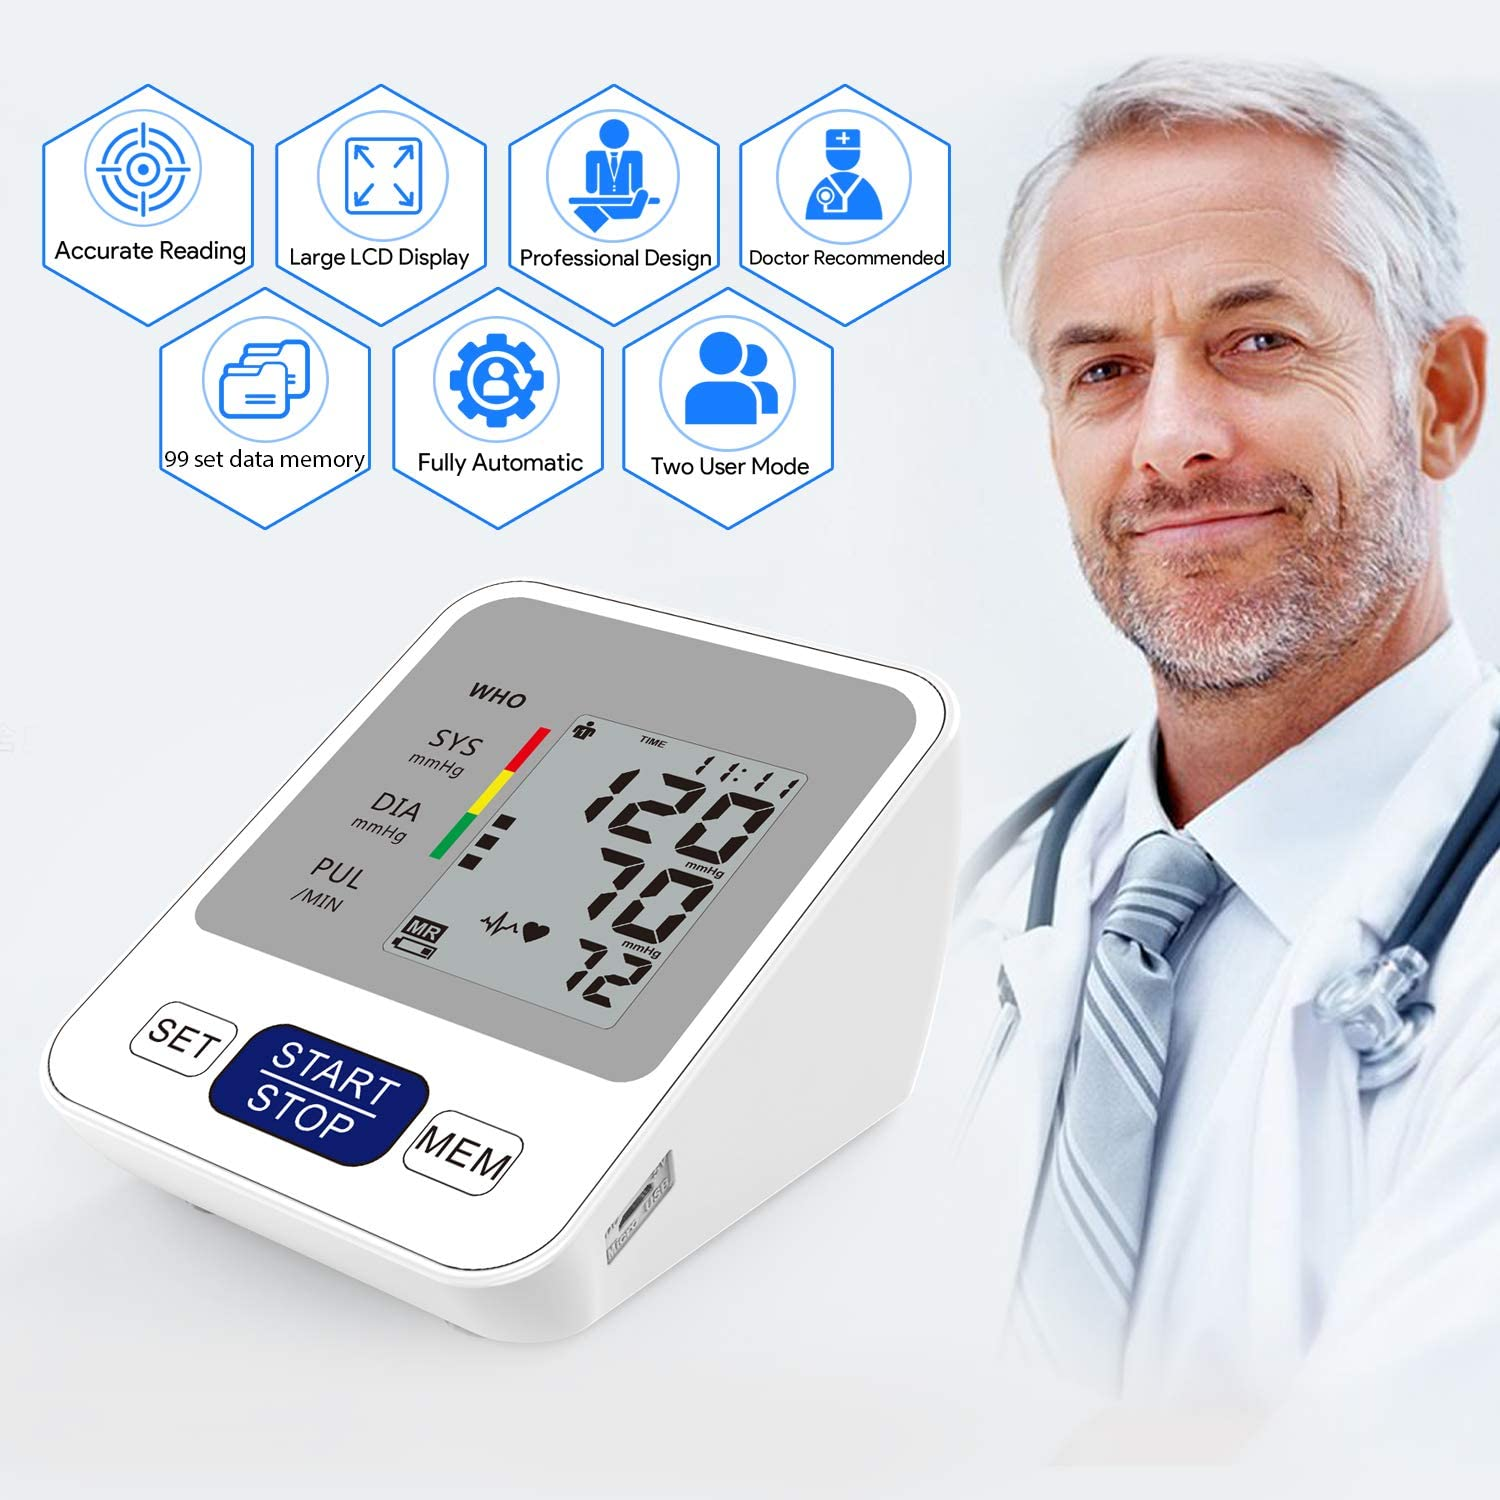 ZIIDII Blood Pressure Monitor,Full Automatic Upper Arm Digital Blood Pressure Machine with 2 Users 198 Memory, Home Use BP Monitor with Cuff – Battery Included – Amazon Vine